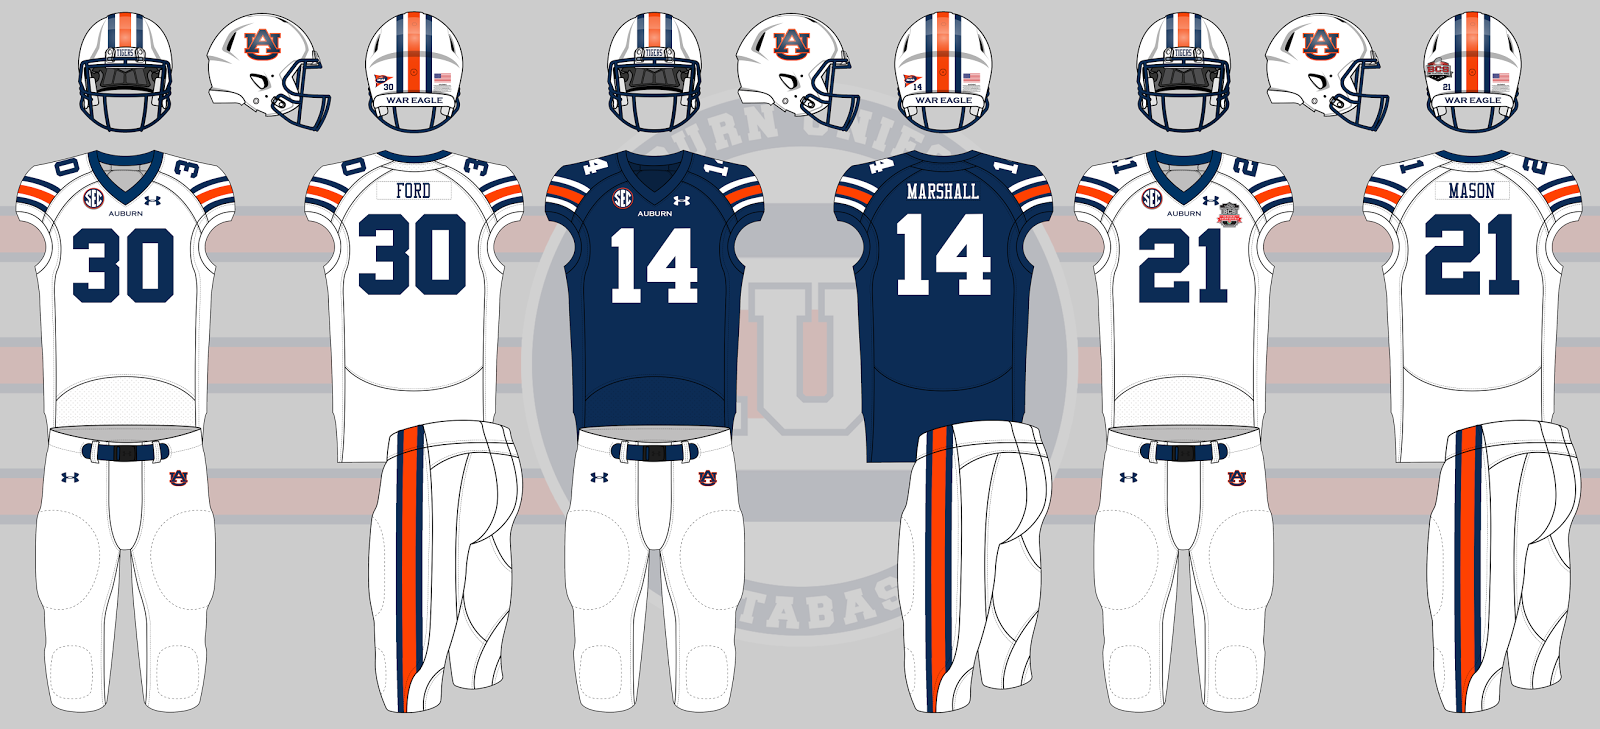 2013 auburn football uniforms bcs championship c48d6756c